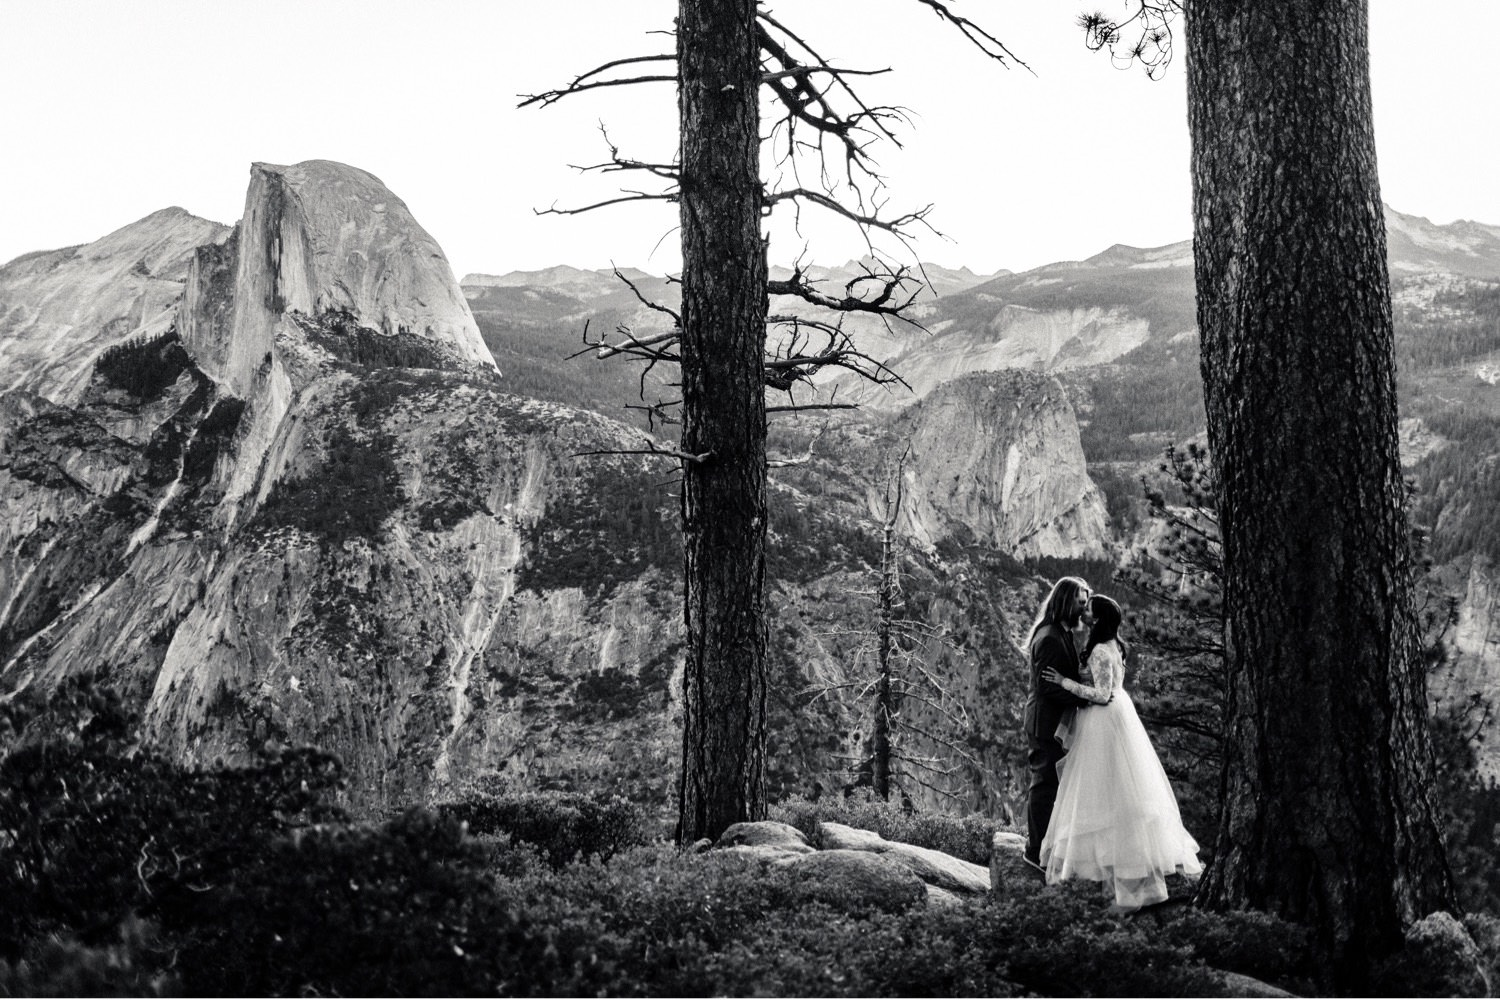 02_alex+matt-wedding-6_park_national_elopement_wedding_yosemite_intimate.jpg